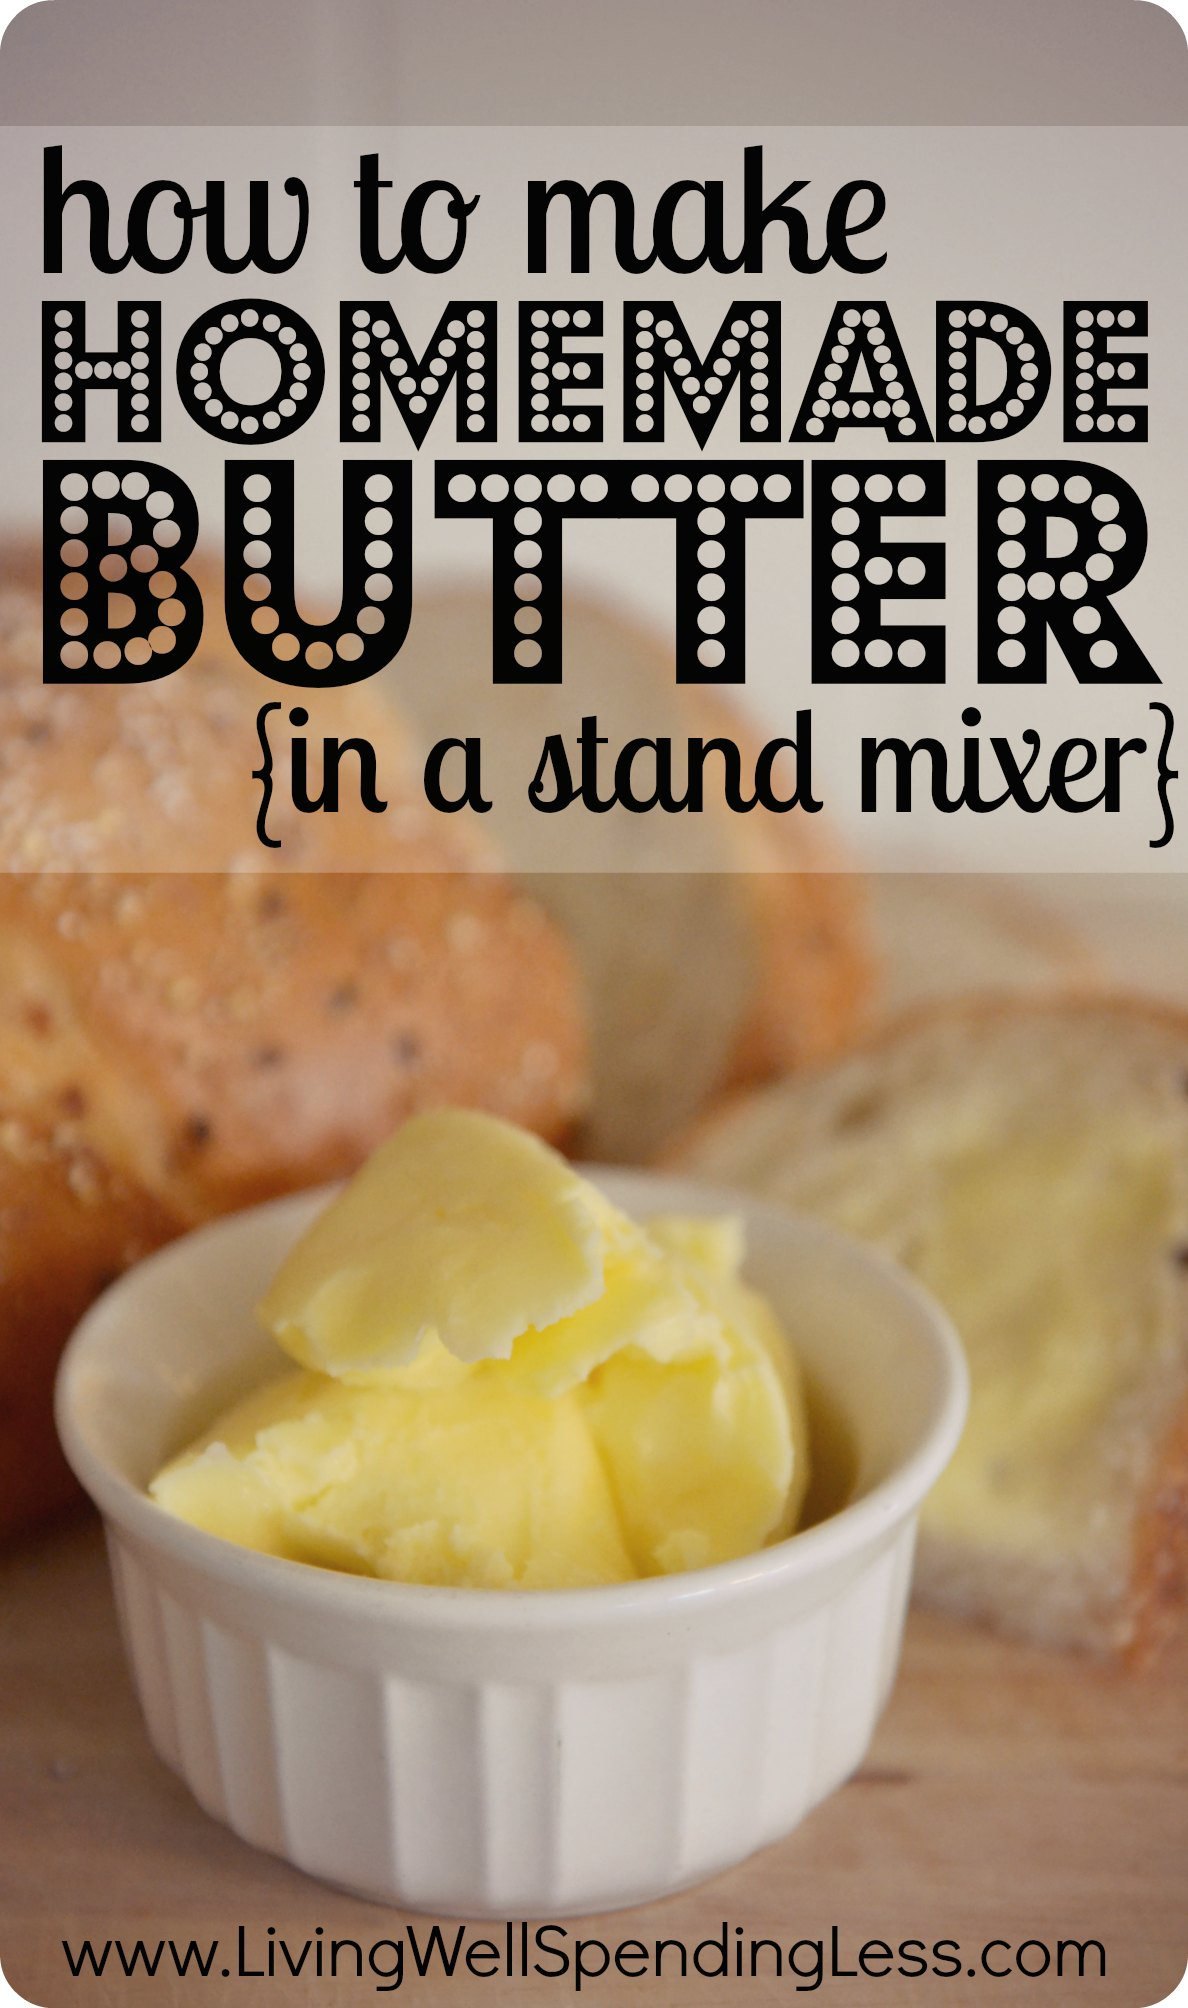 How-to-make-homemade-butter-in-a-stand-mixer.-I-cant-believe-how-easy ...